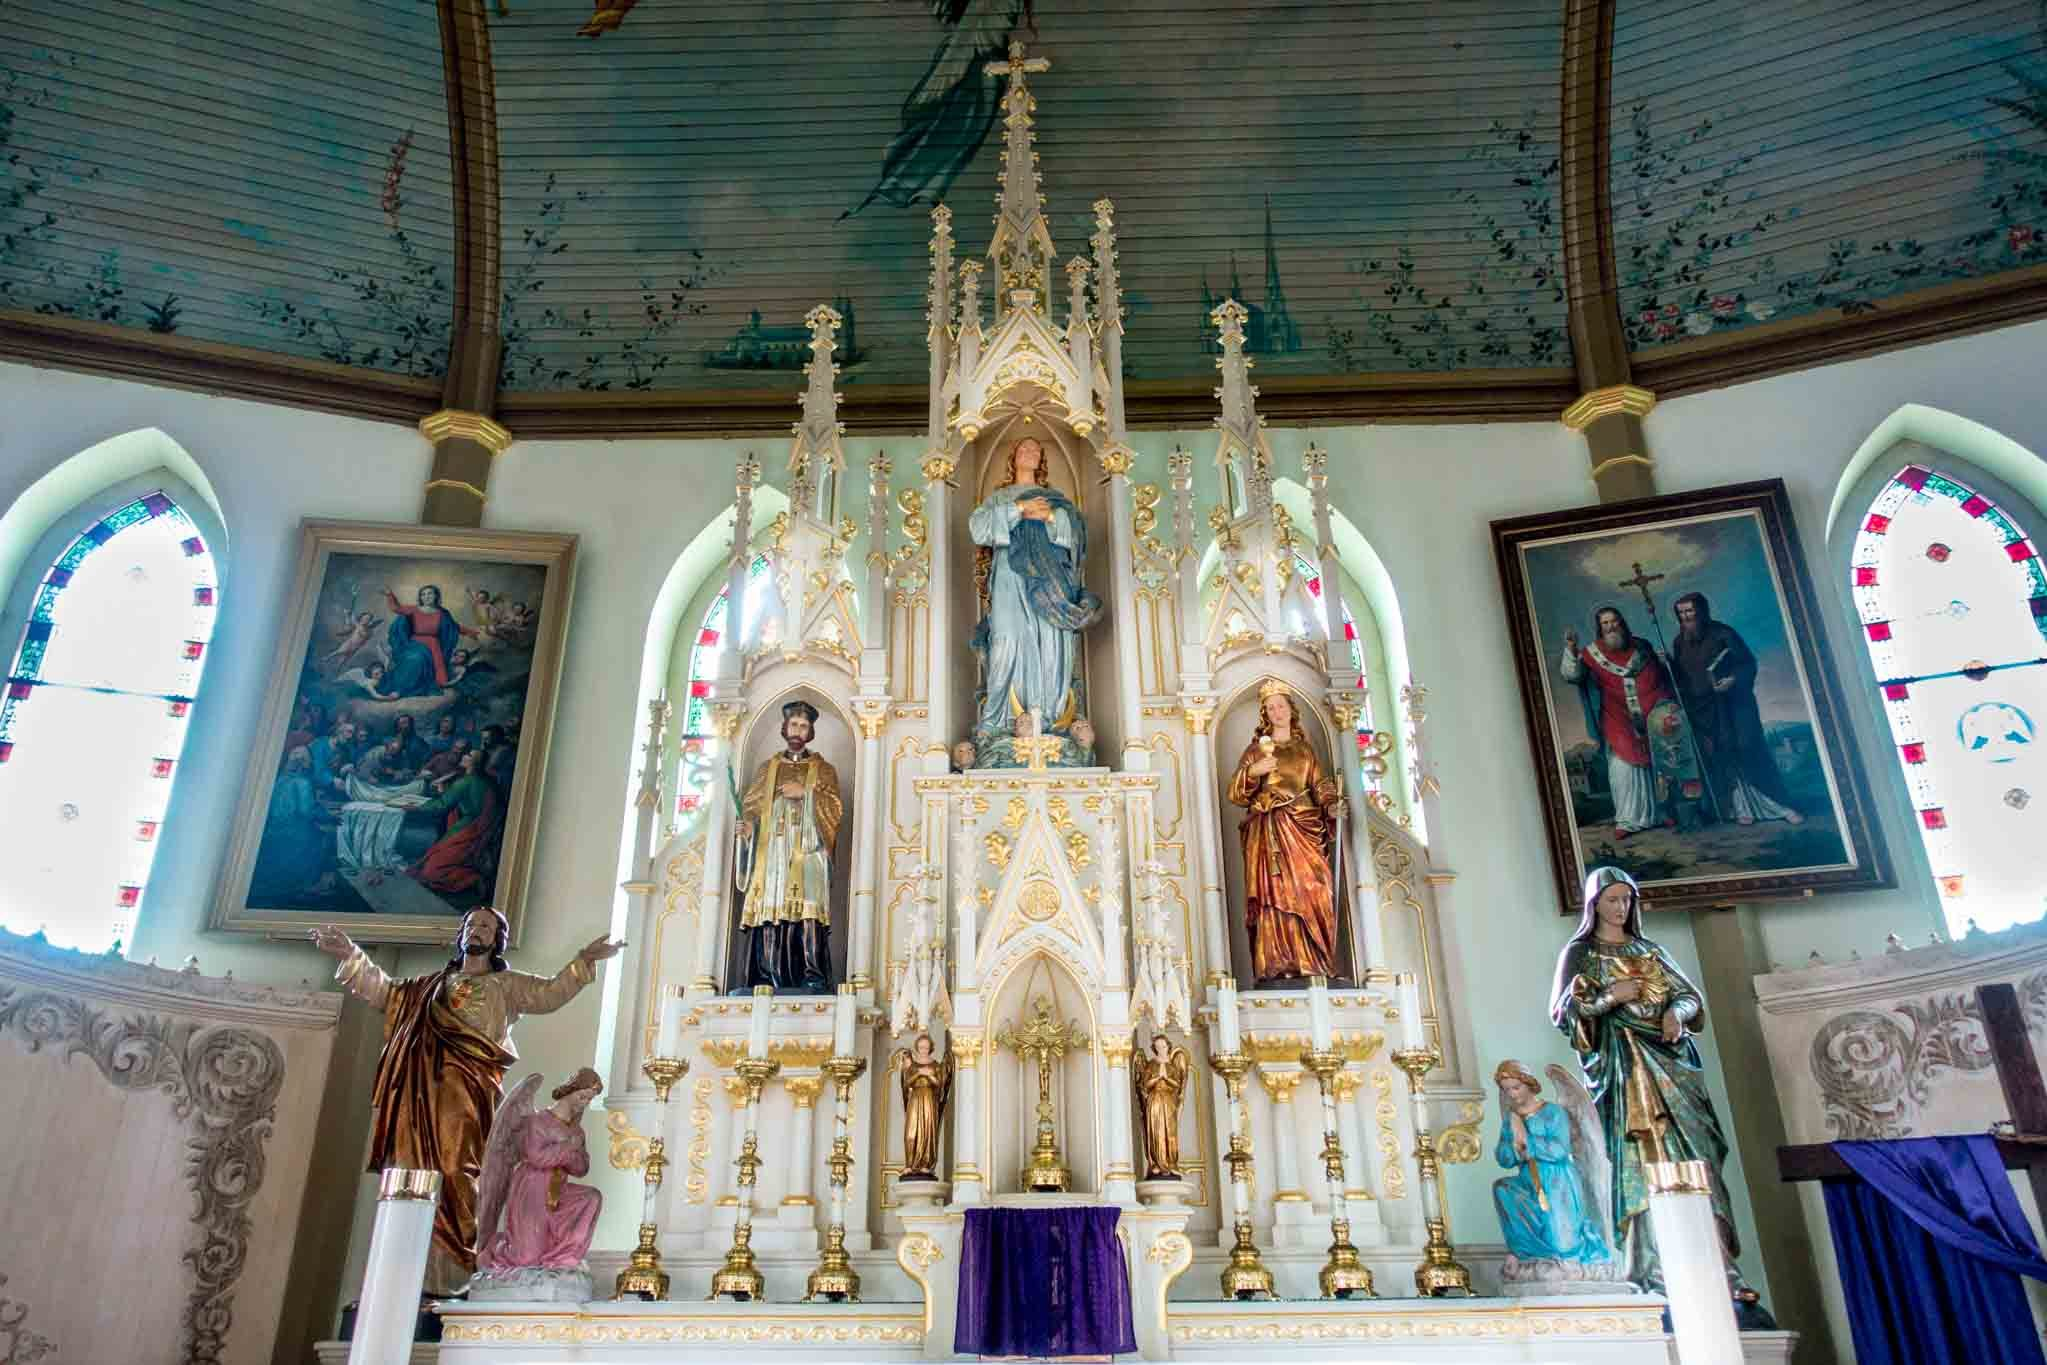 Altar at one of the painted churches of Texas, St. Mary's Church of the Assumption in Praha TX